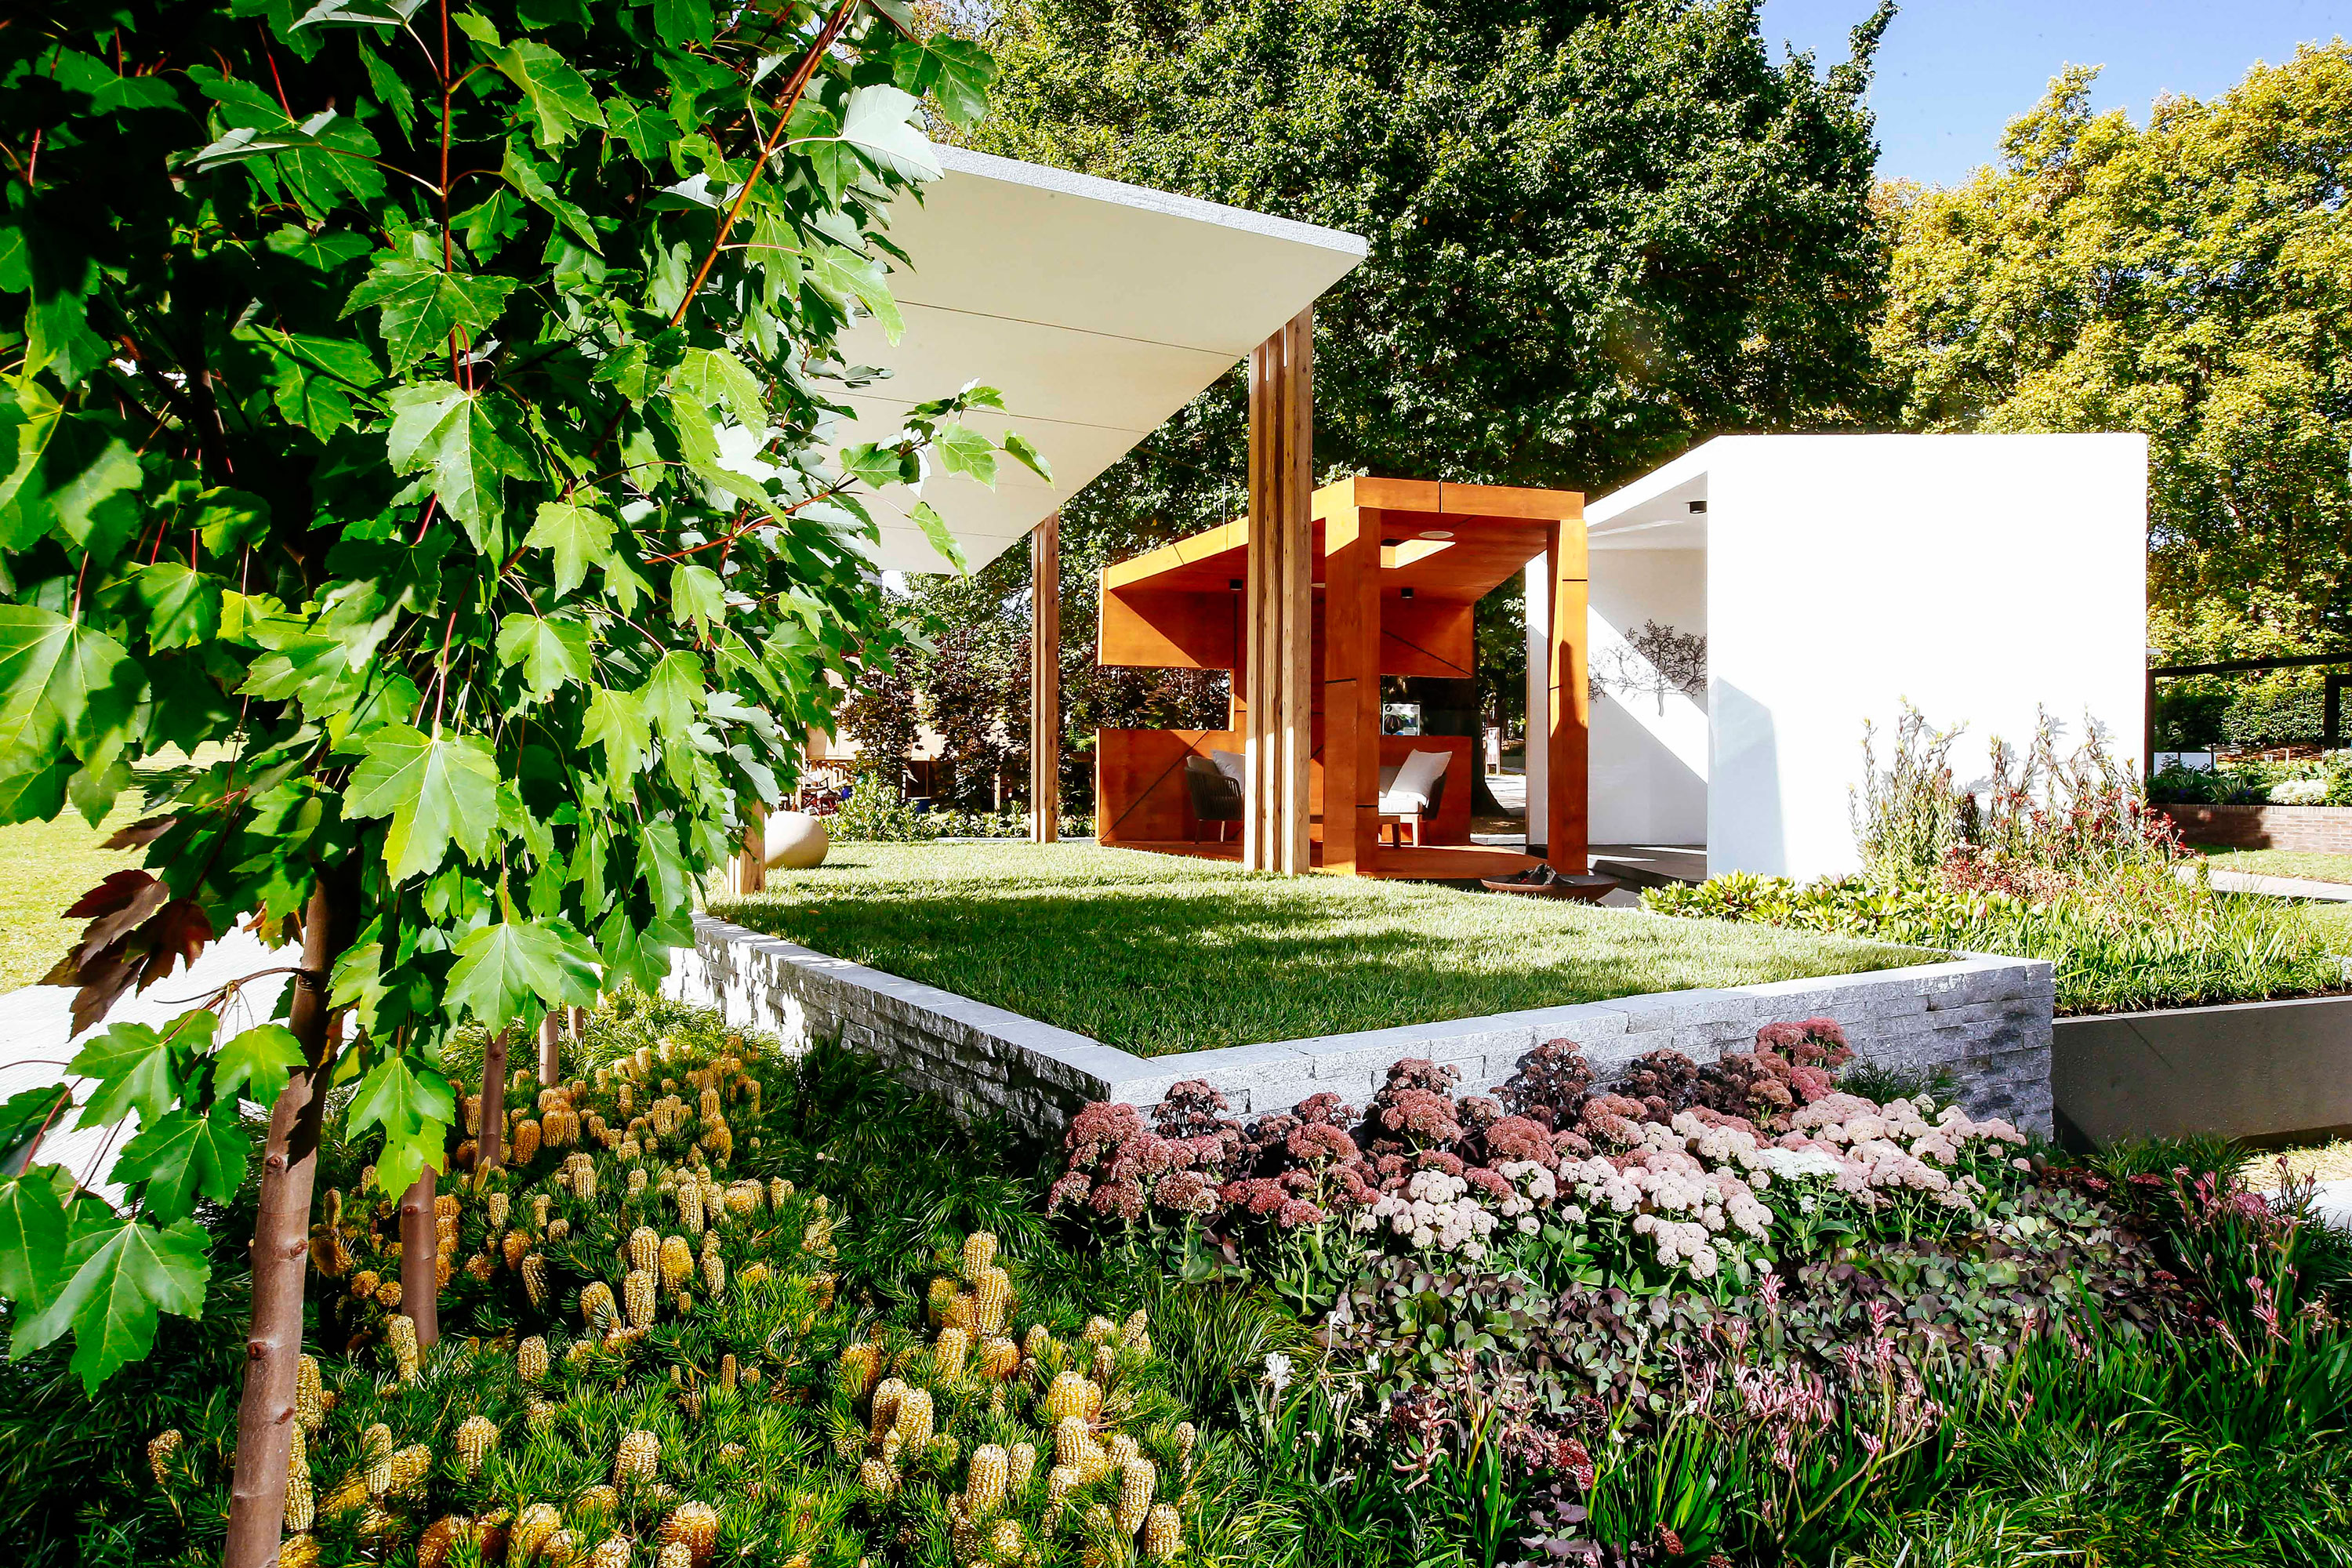 Australia 39 s most beautiful garden designs 9homes for Garden designs melbourne